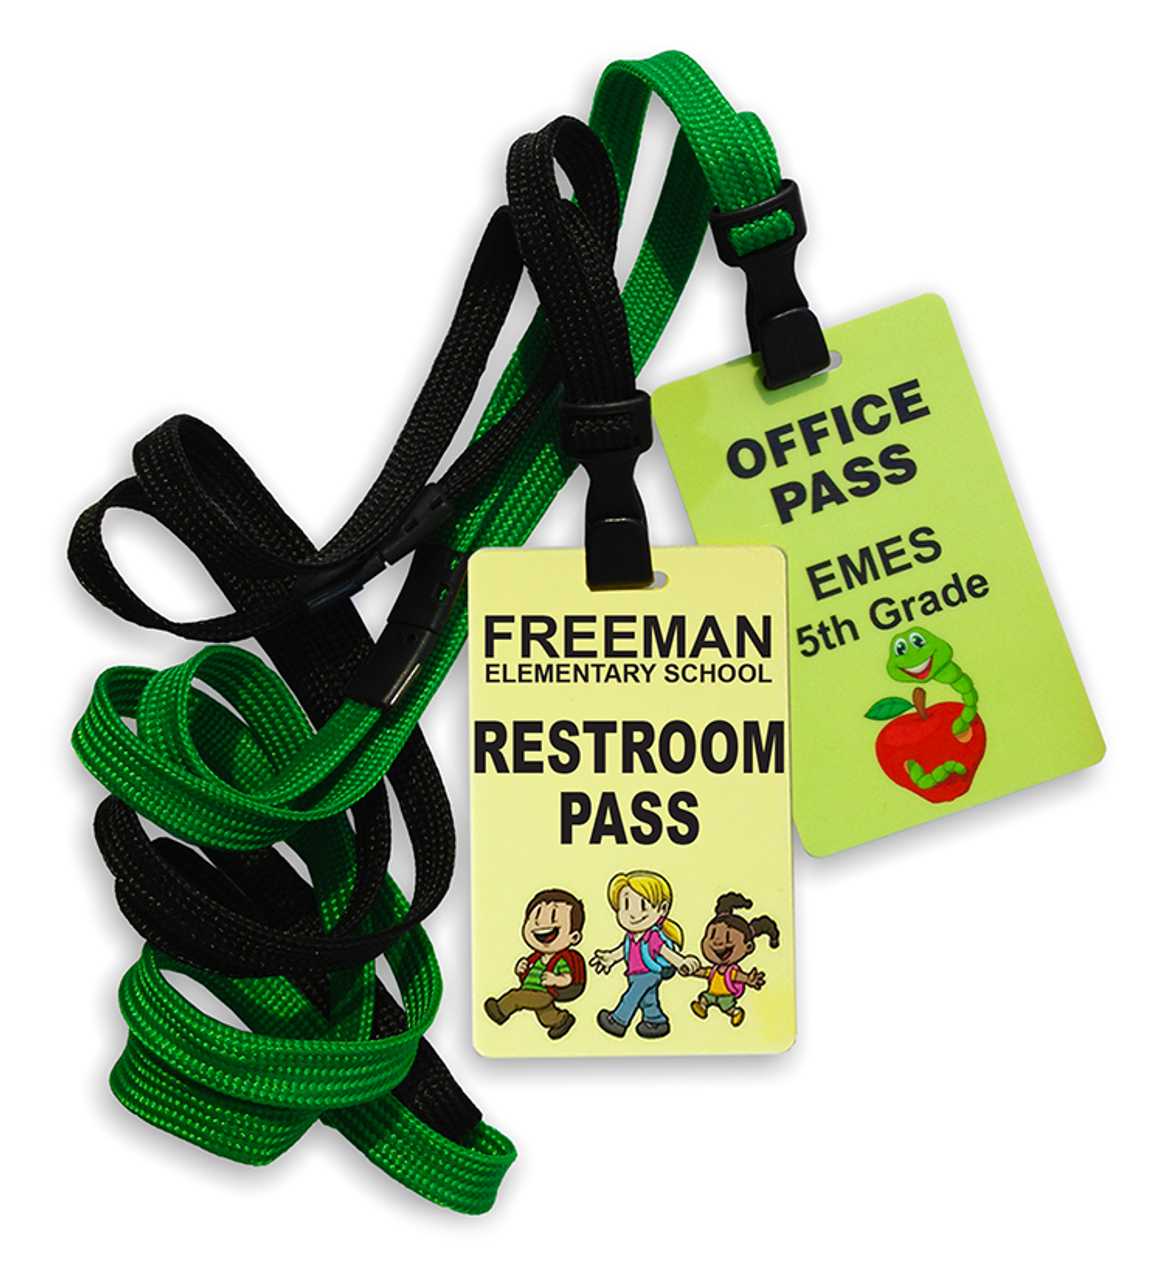 Customize your Hall Pass Cards to meet your needs! Order coordinating breakaway lanyards or use the included clothing clips.